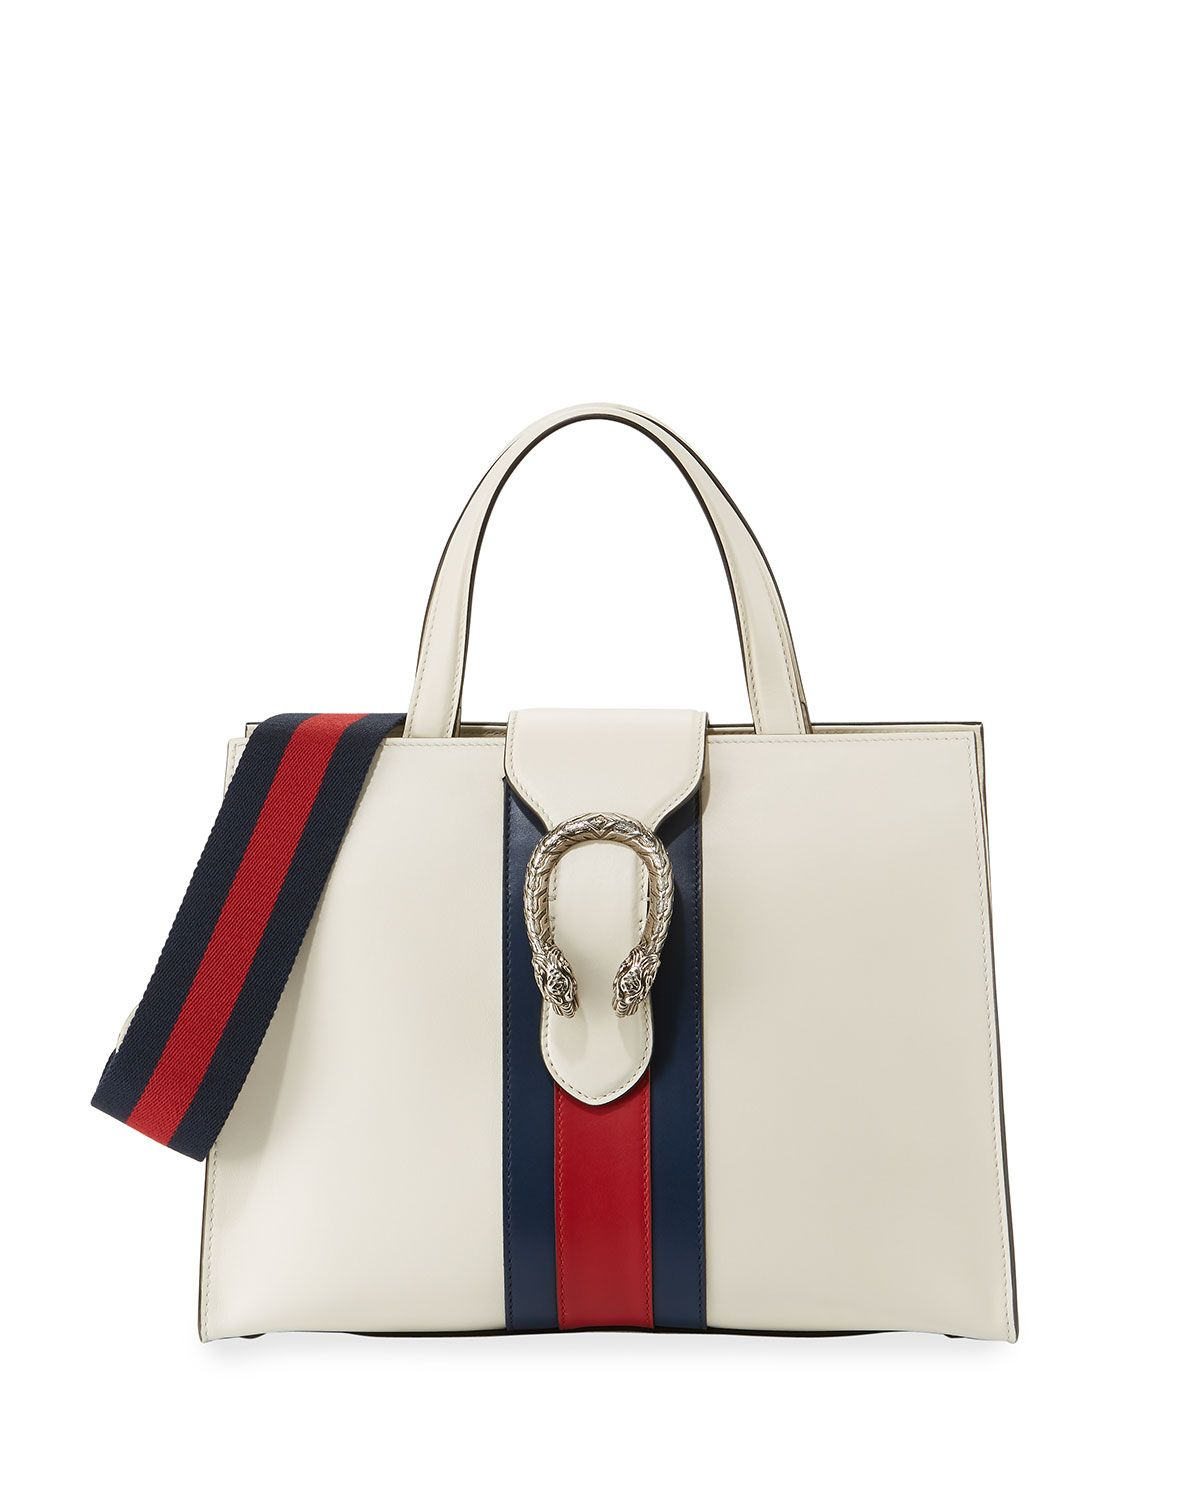 b450aa7b2a0e29 gucci resort 2017 bag collection spotted fashion   Cute   Pinterest ...